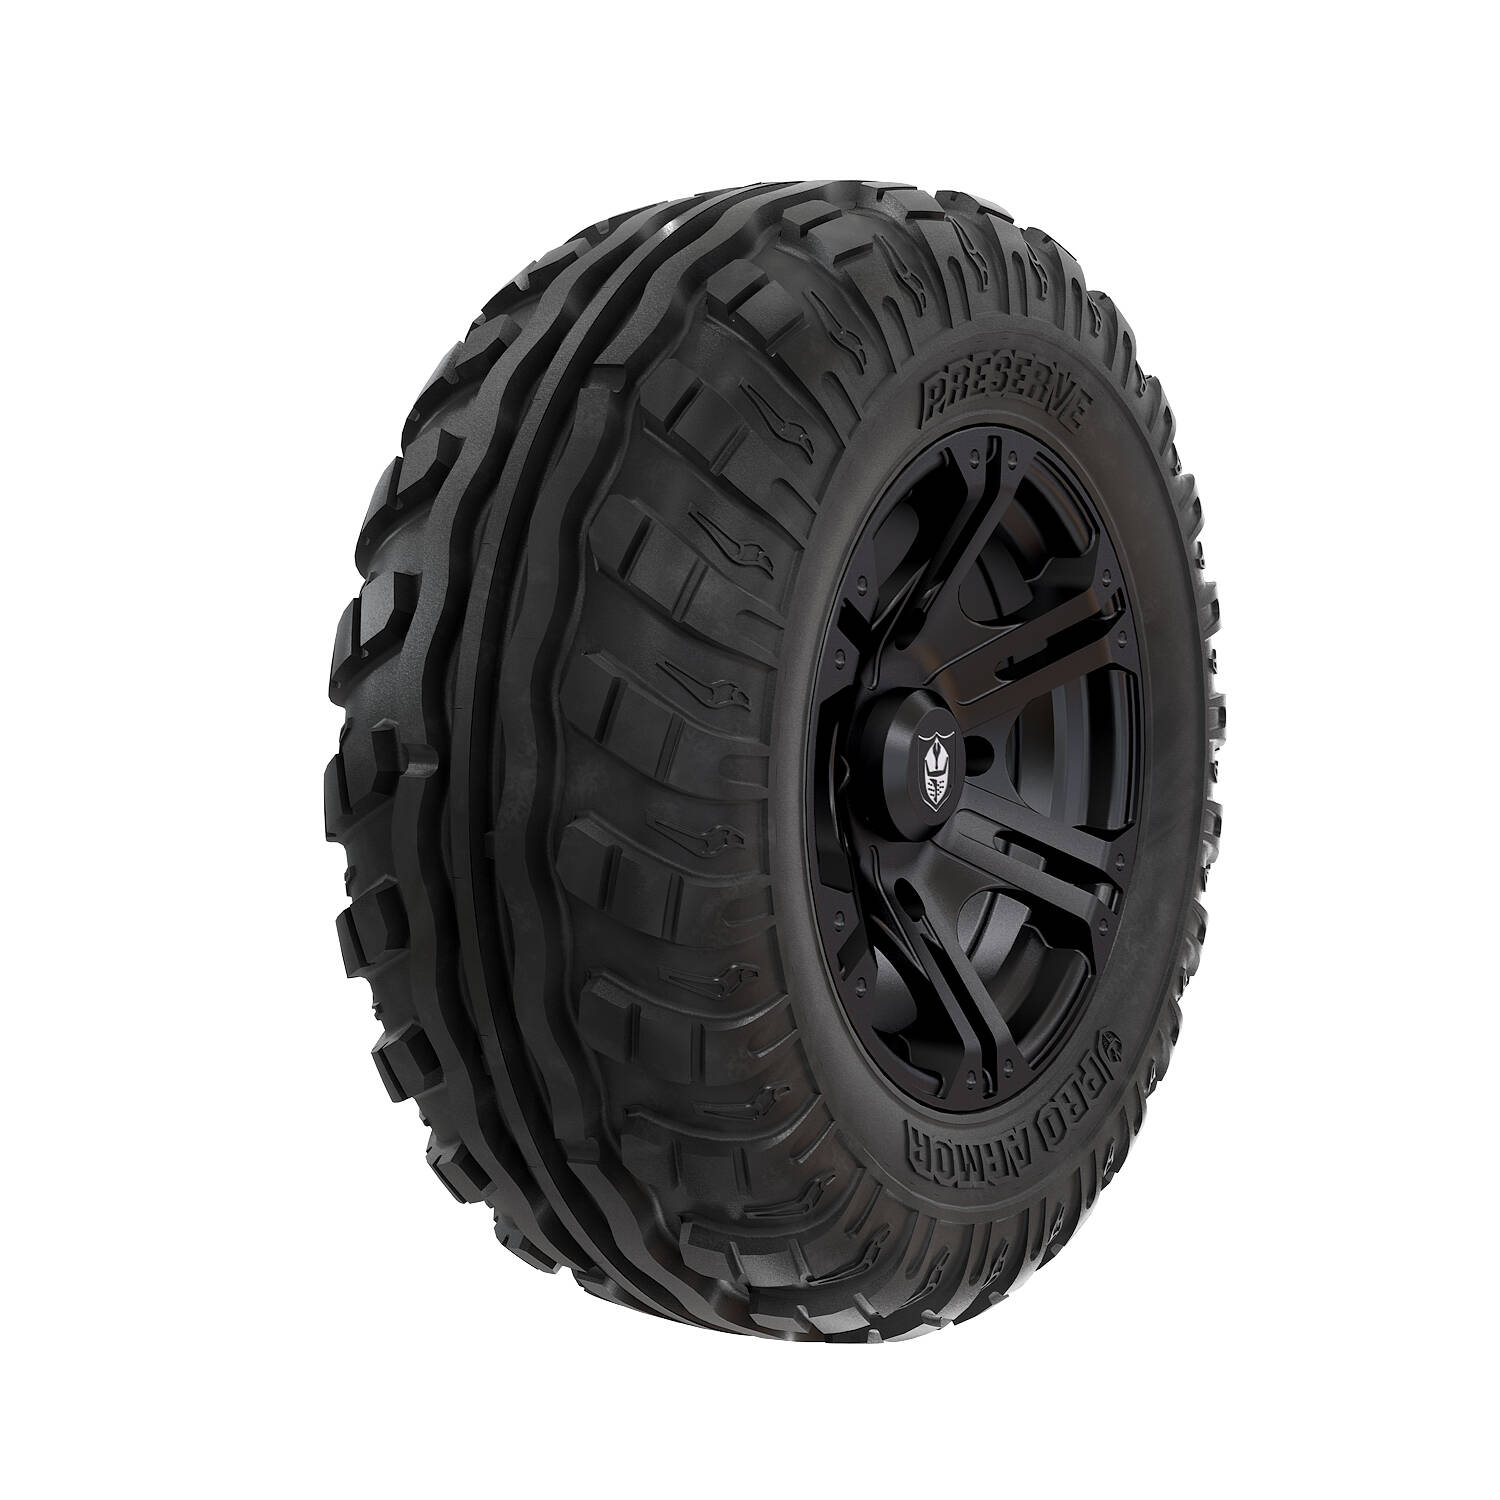 Pro Armor® Wheel & Tire Set: SIXR - Matte Black & Preserve™ - 27""